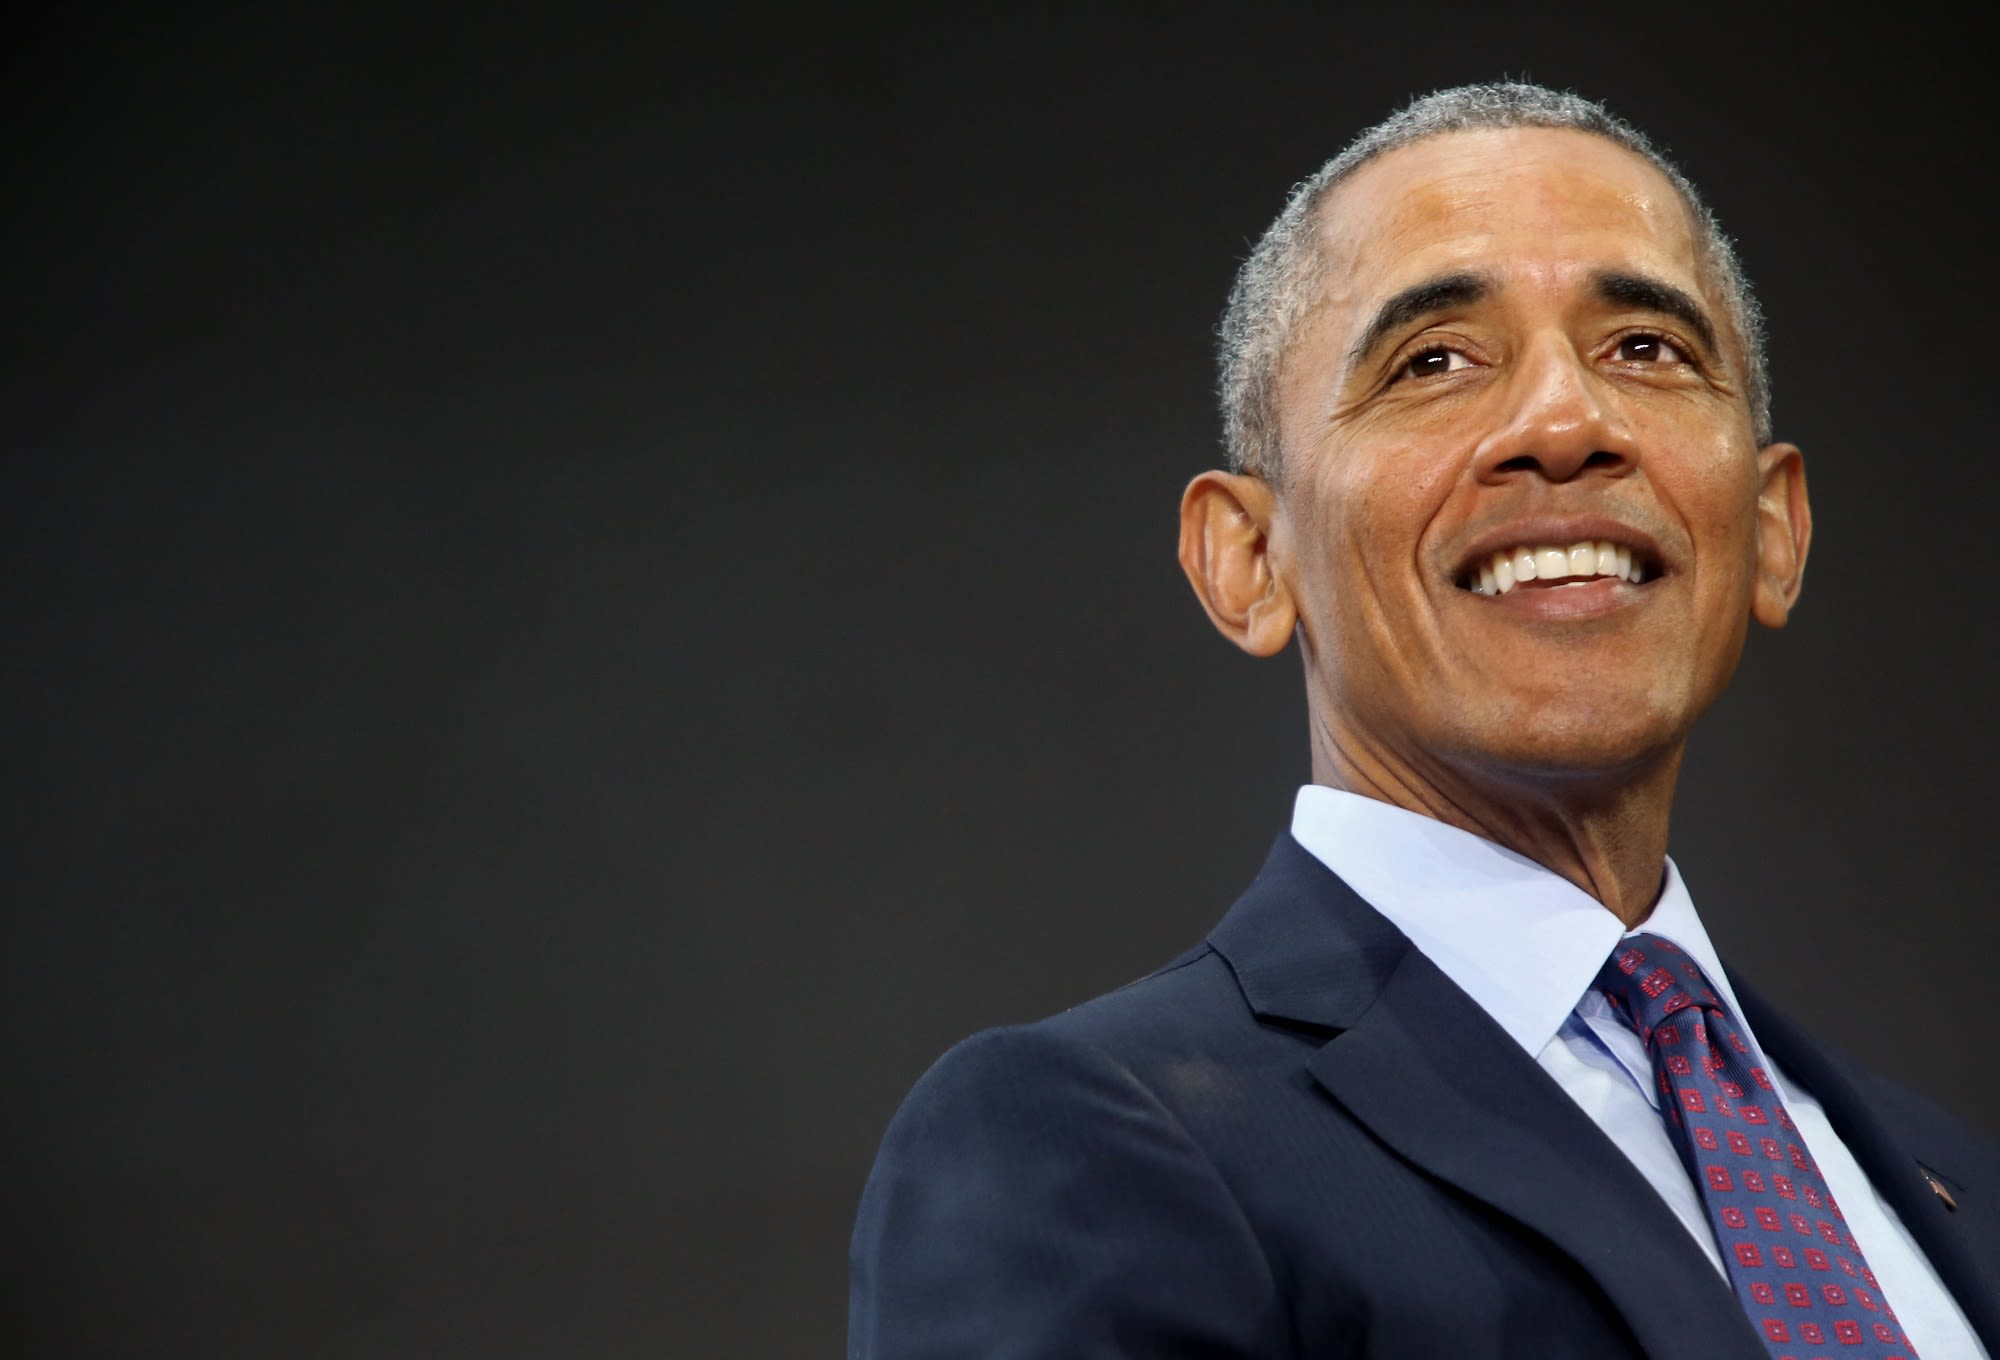 Want To Stay Cool Under Pressure? Follow 3 Obama Tricks